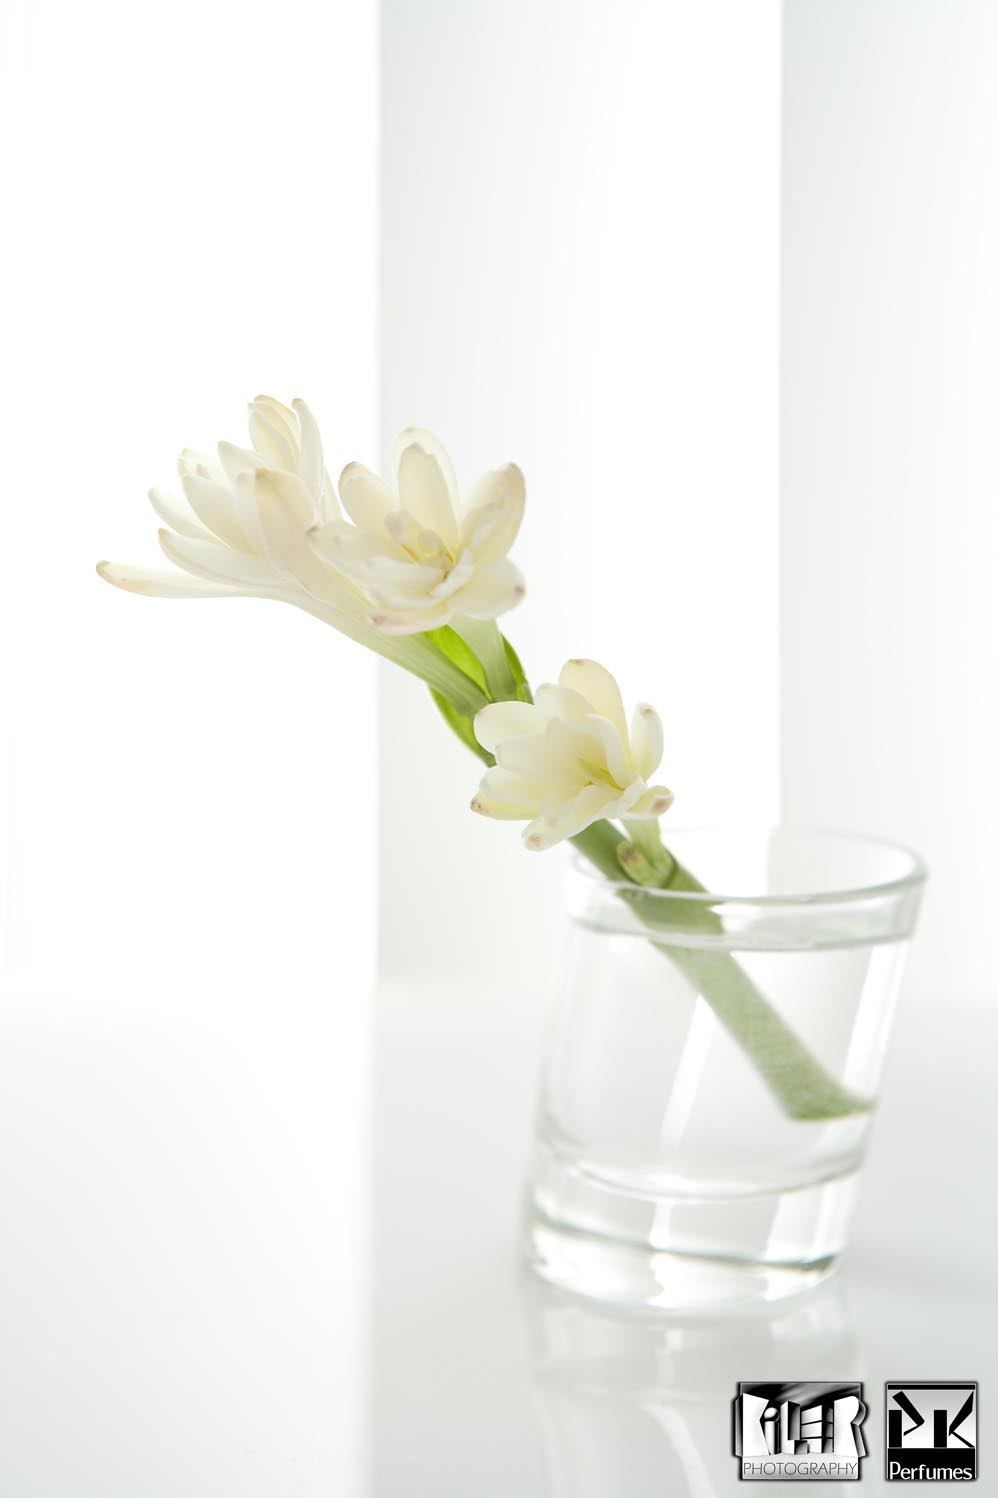 Tuberose light -  in Glass - PK Perfumes